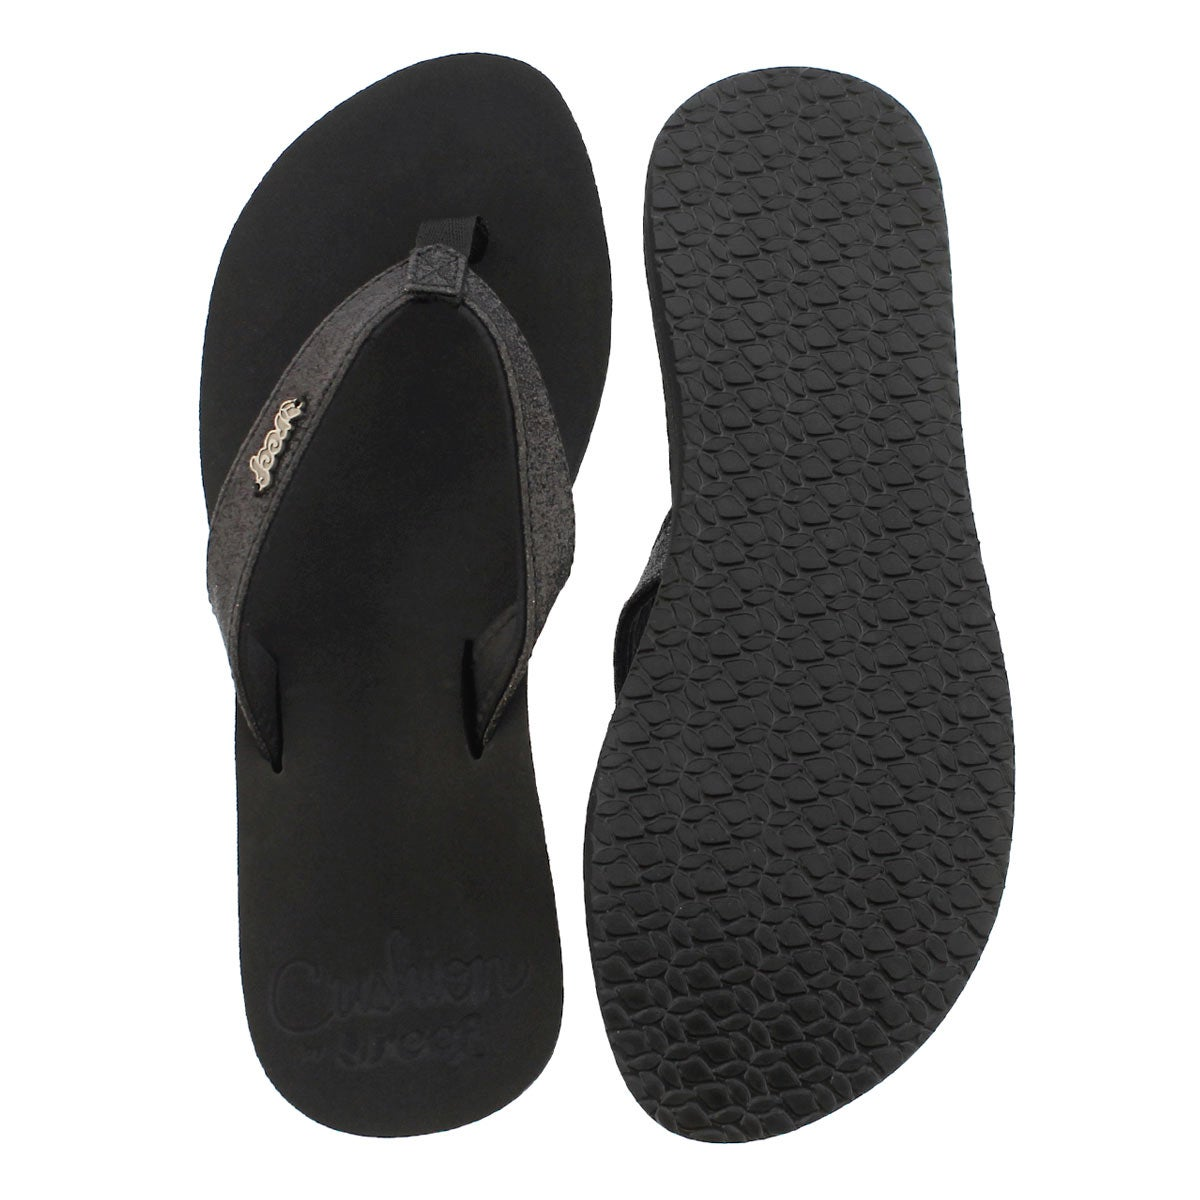 Lds Star Cushion black flip flop